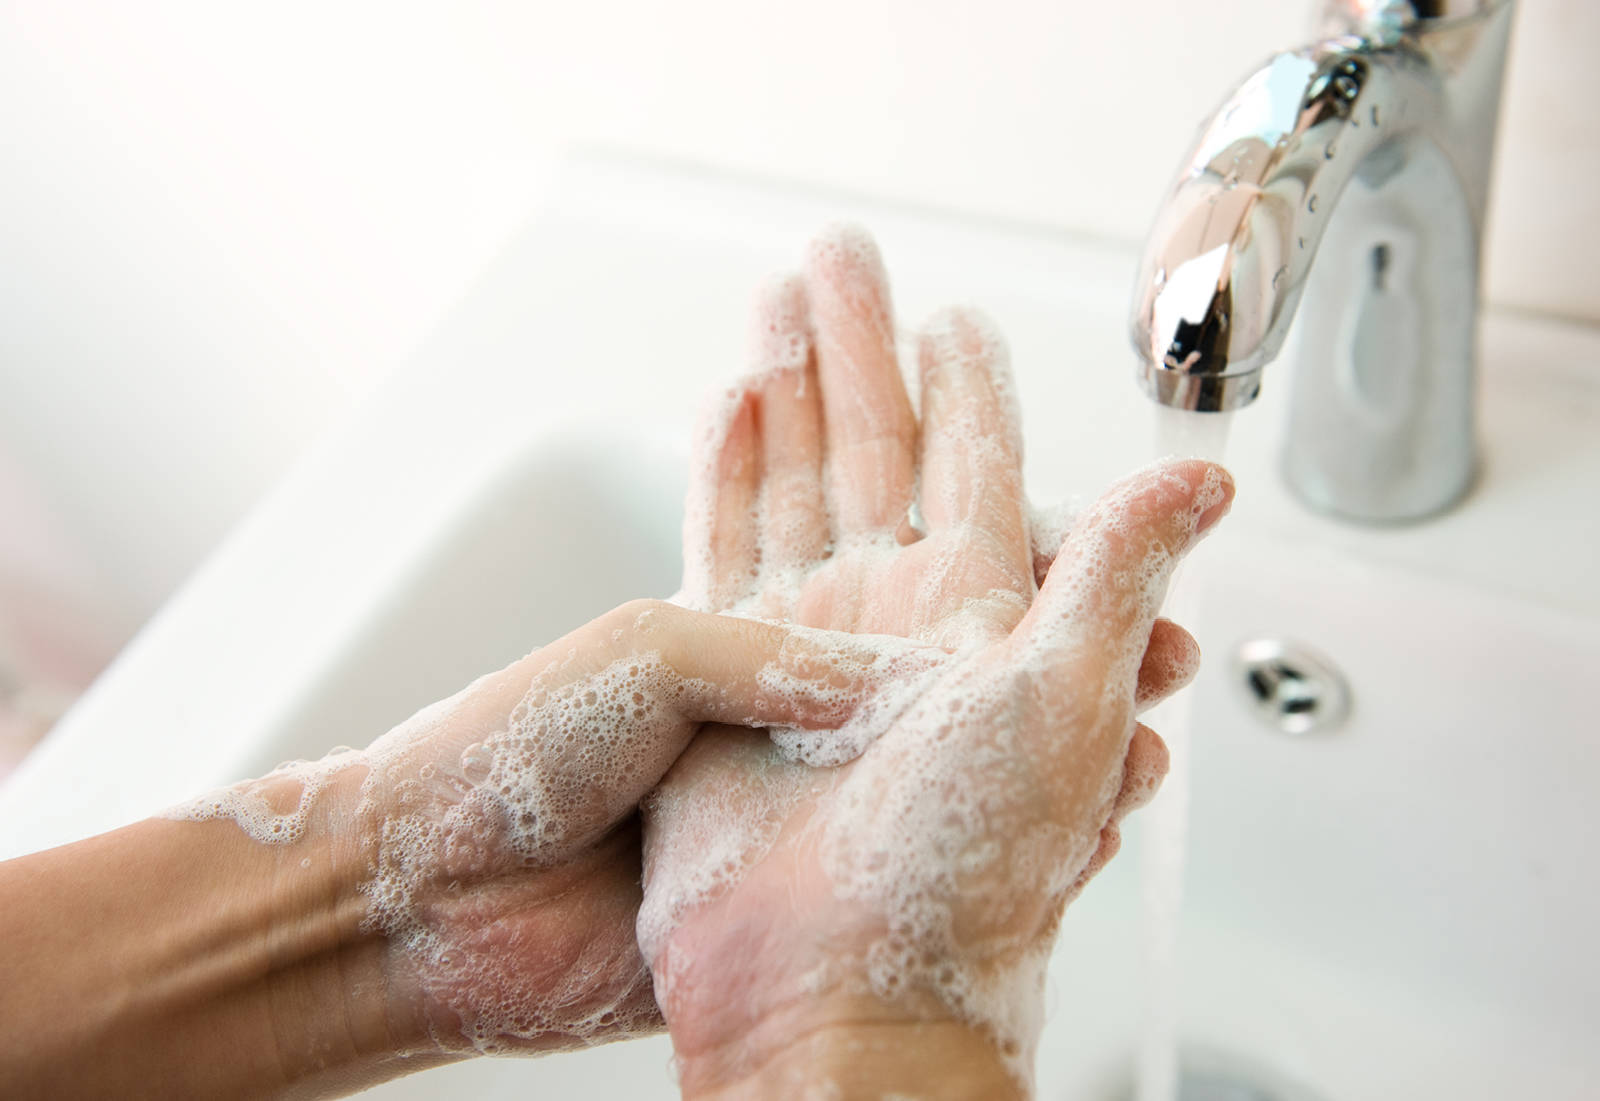 Now please wash your hands!